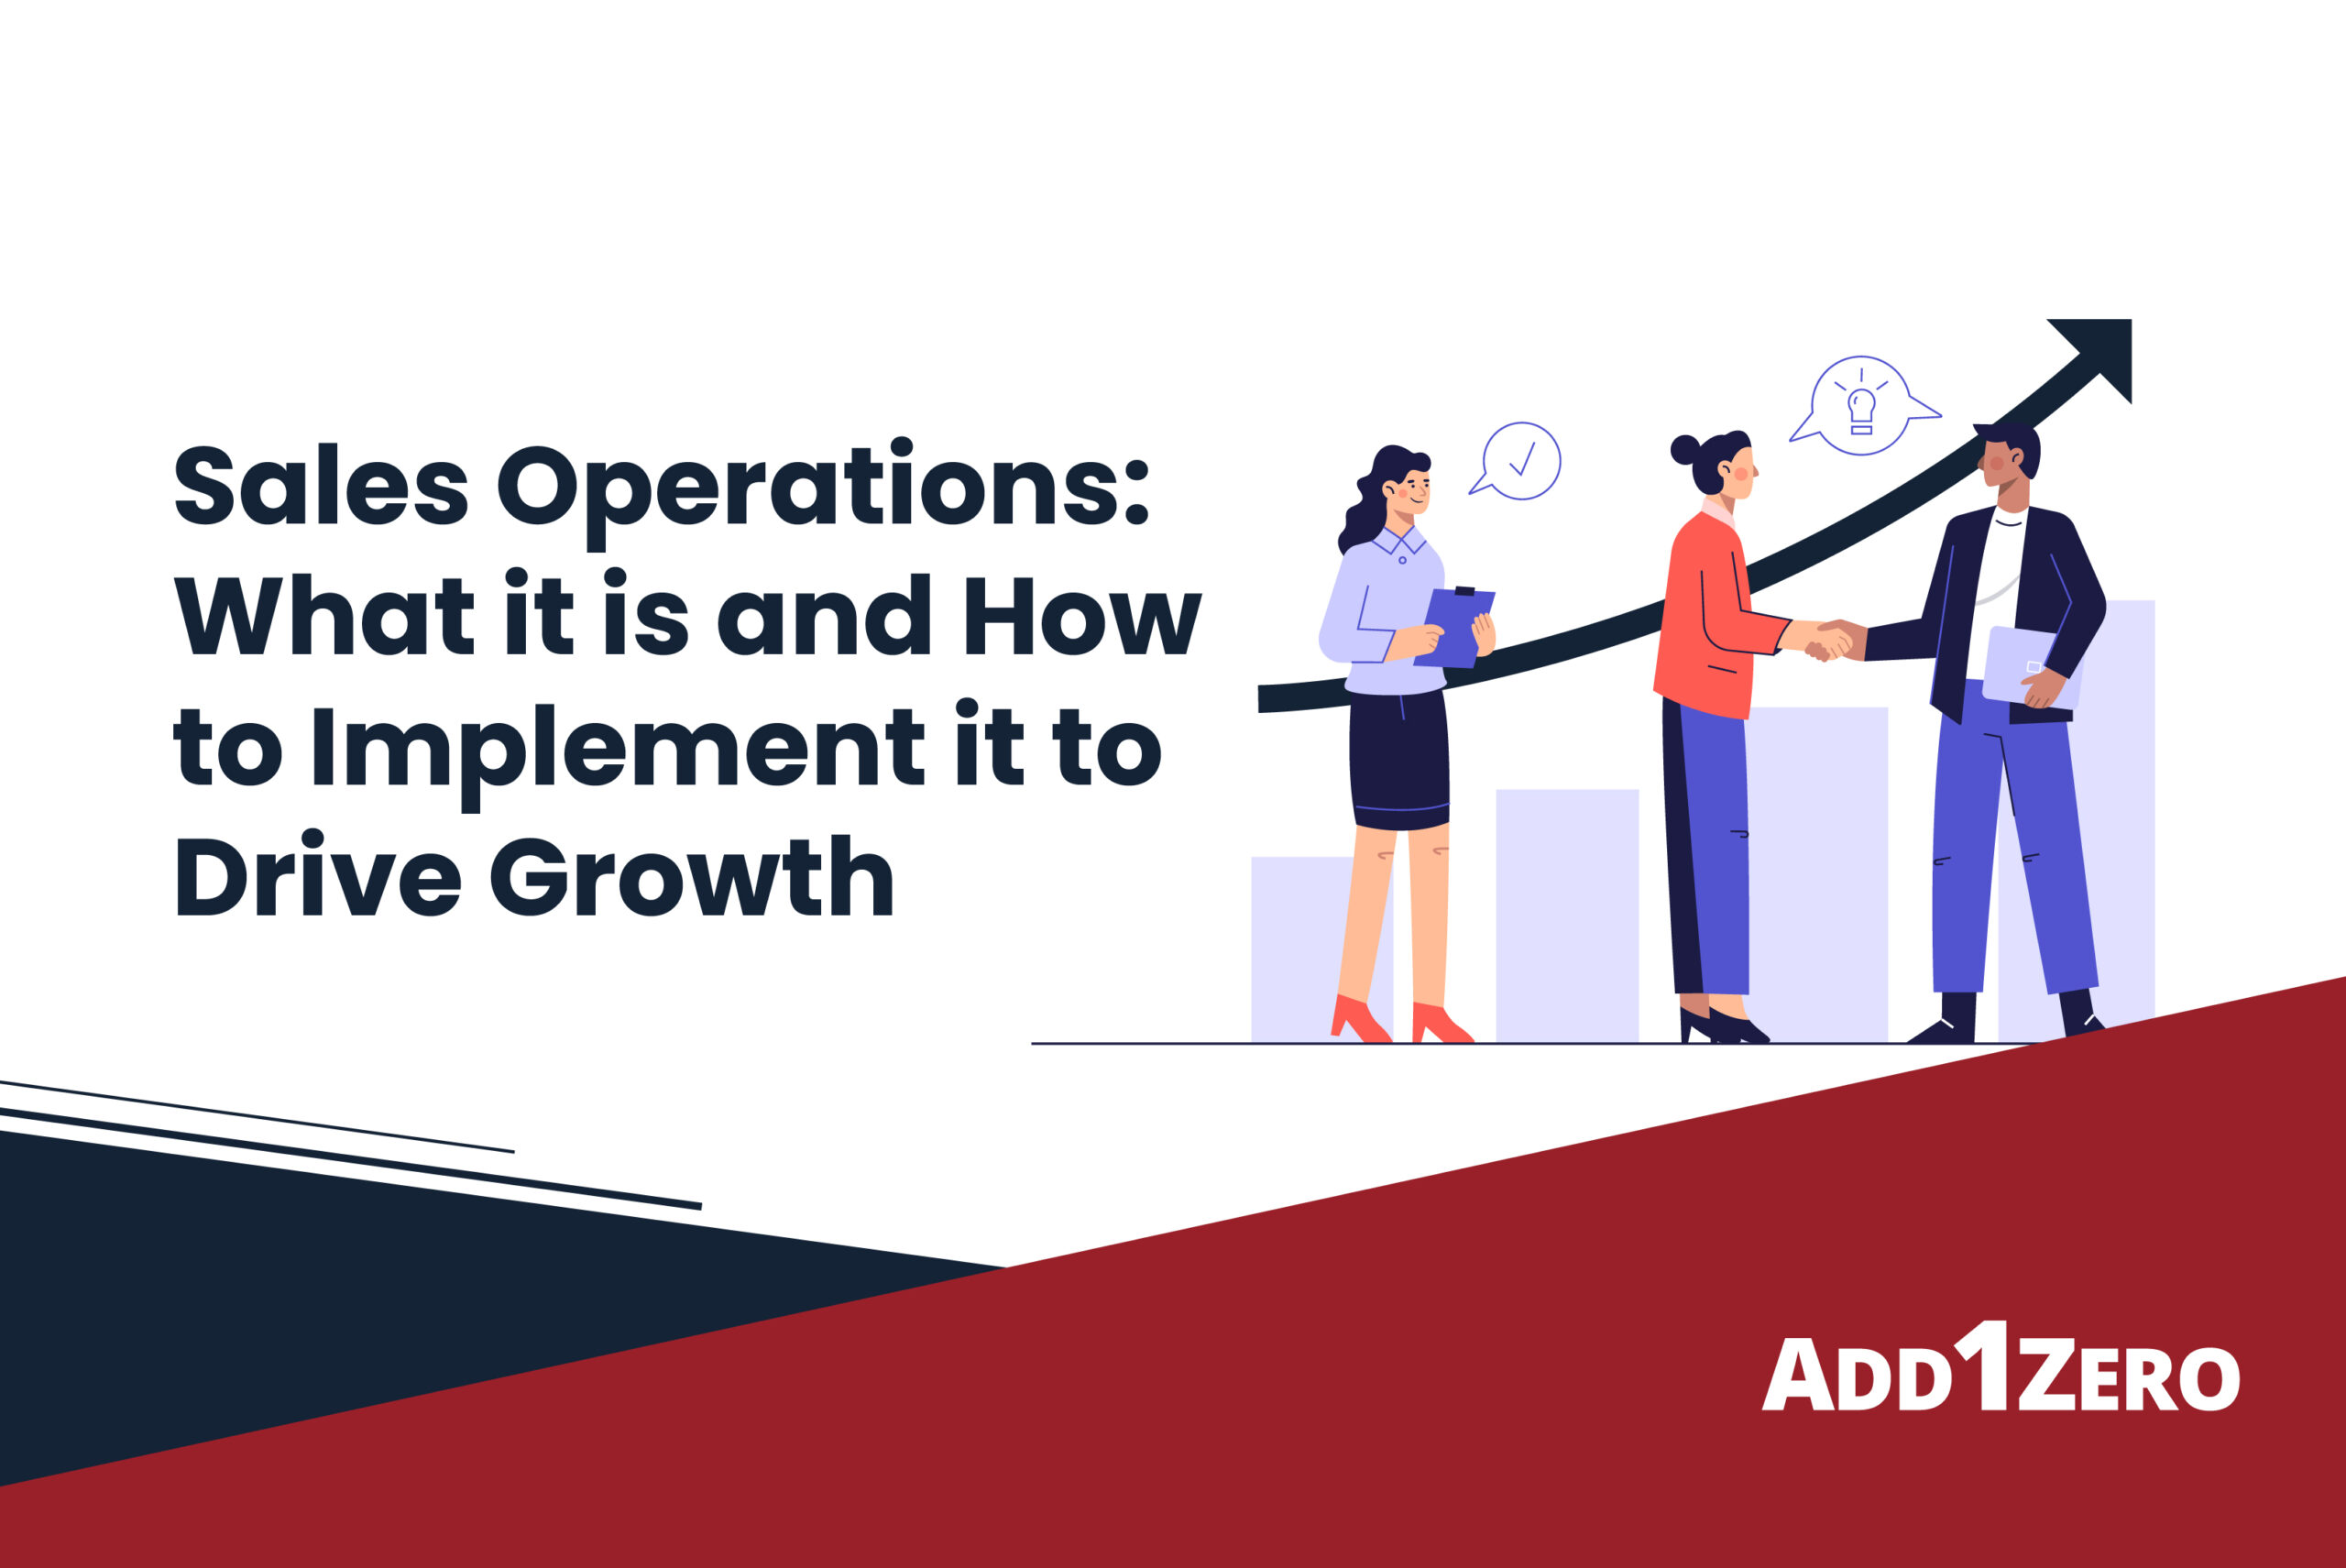 Sales operations: What it is and how to implement it to drive growth